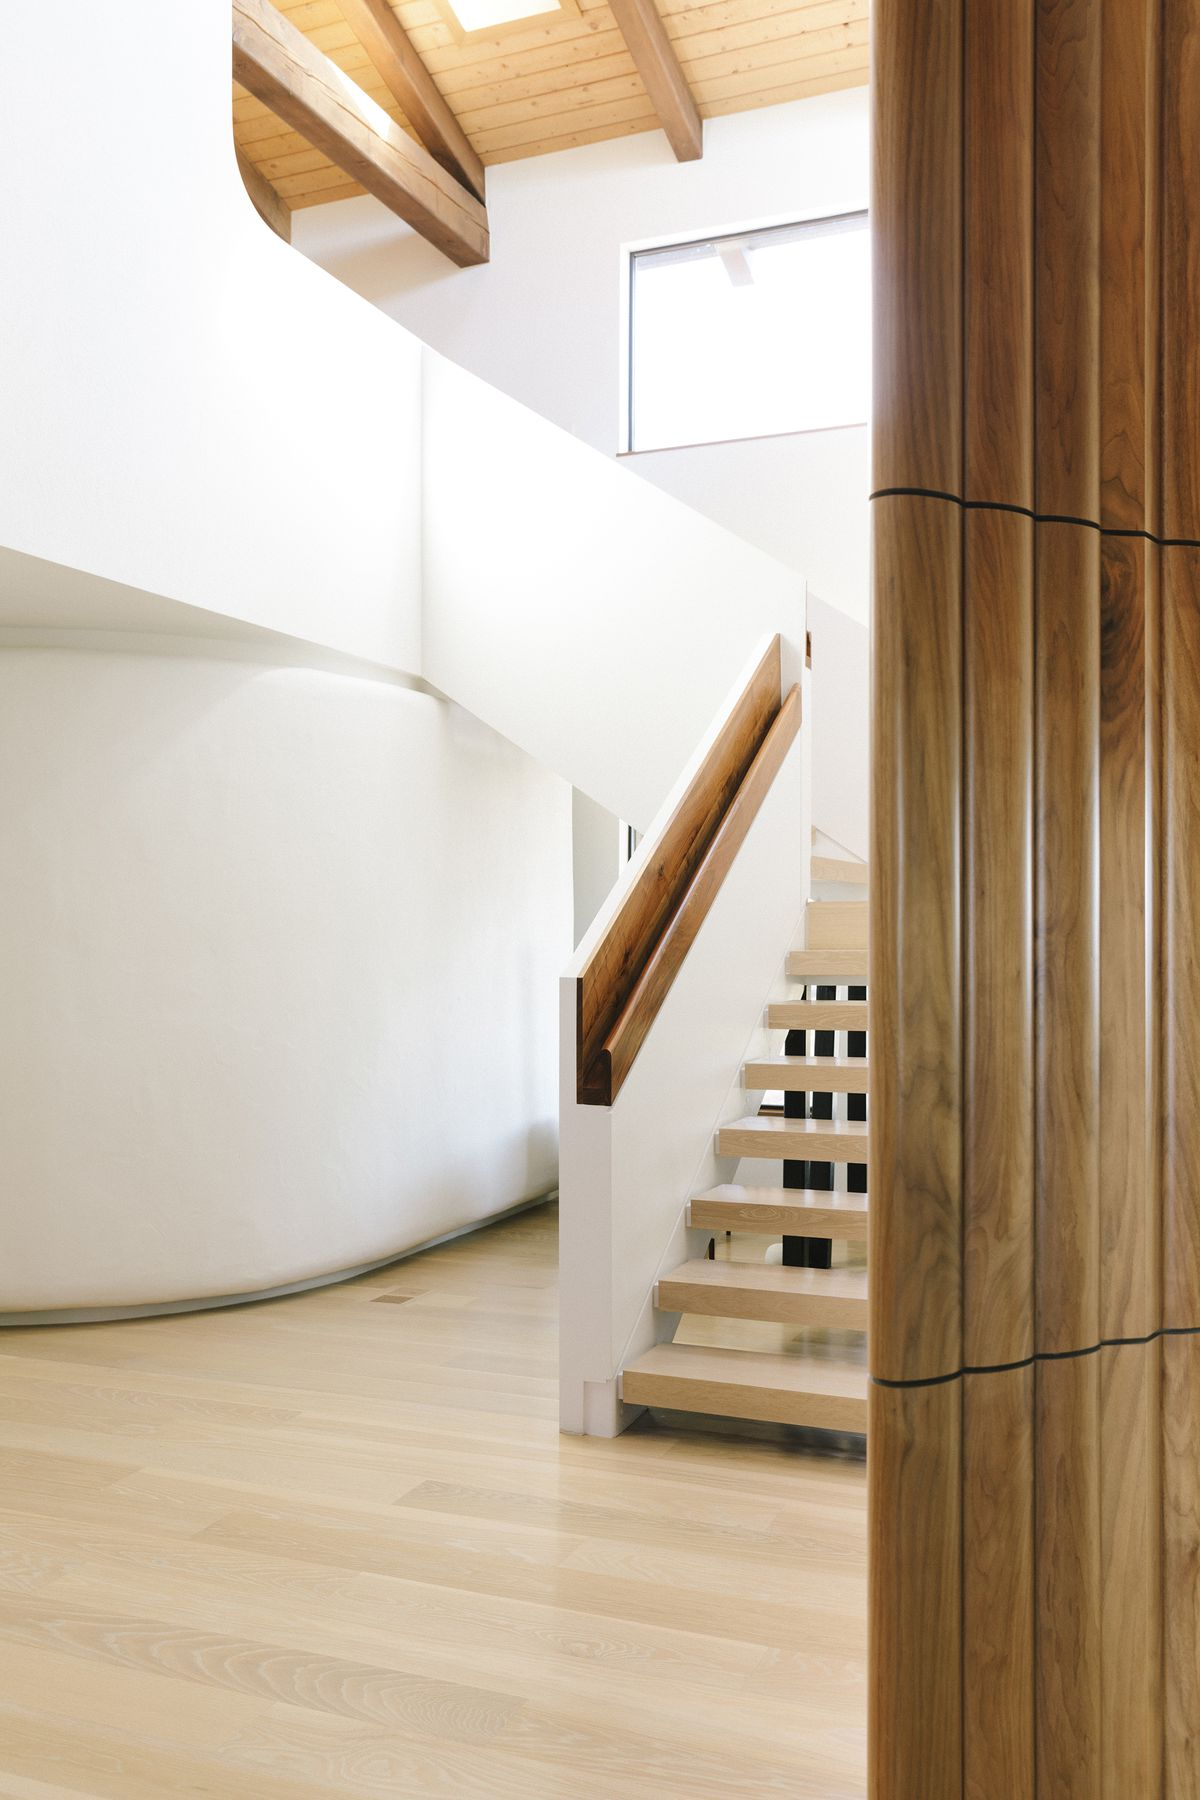 A staircase. The stairs are wooden. The walls and sides of the staircase are painted white.